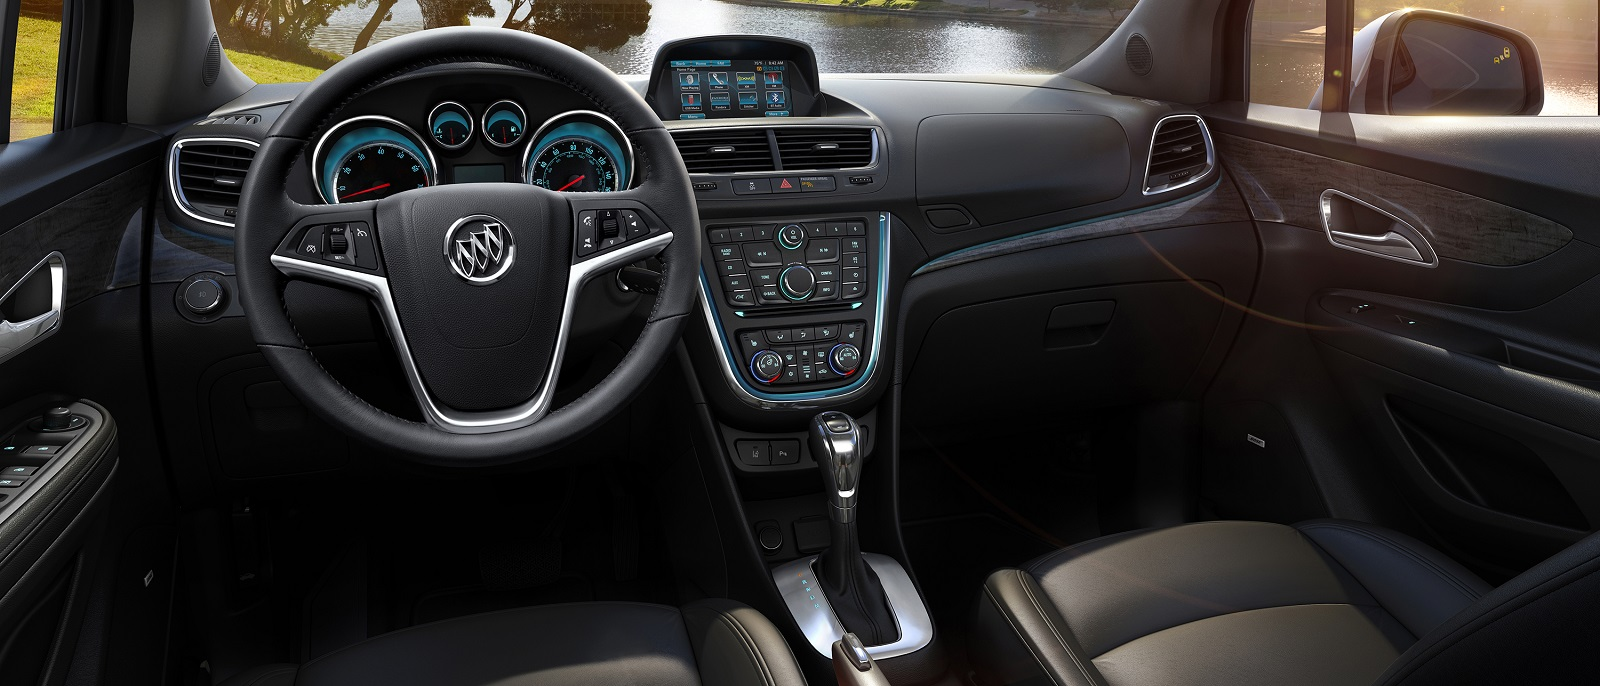 reviews awd test buick car convenience touring encore review s original and driver sport photo